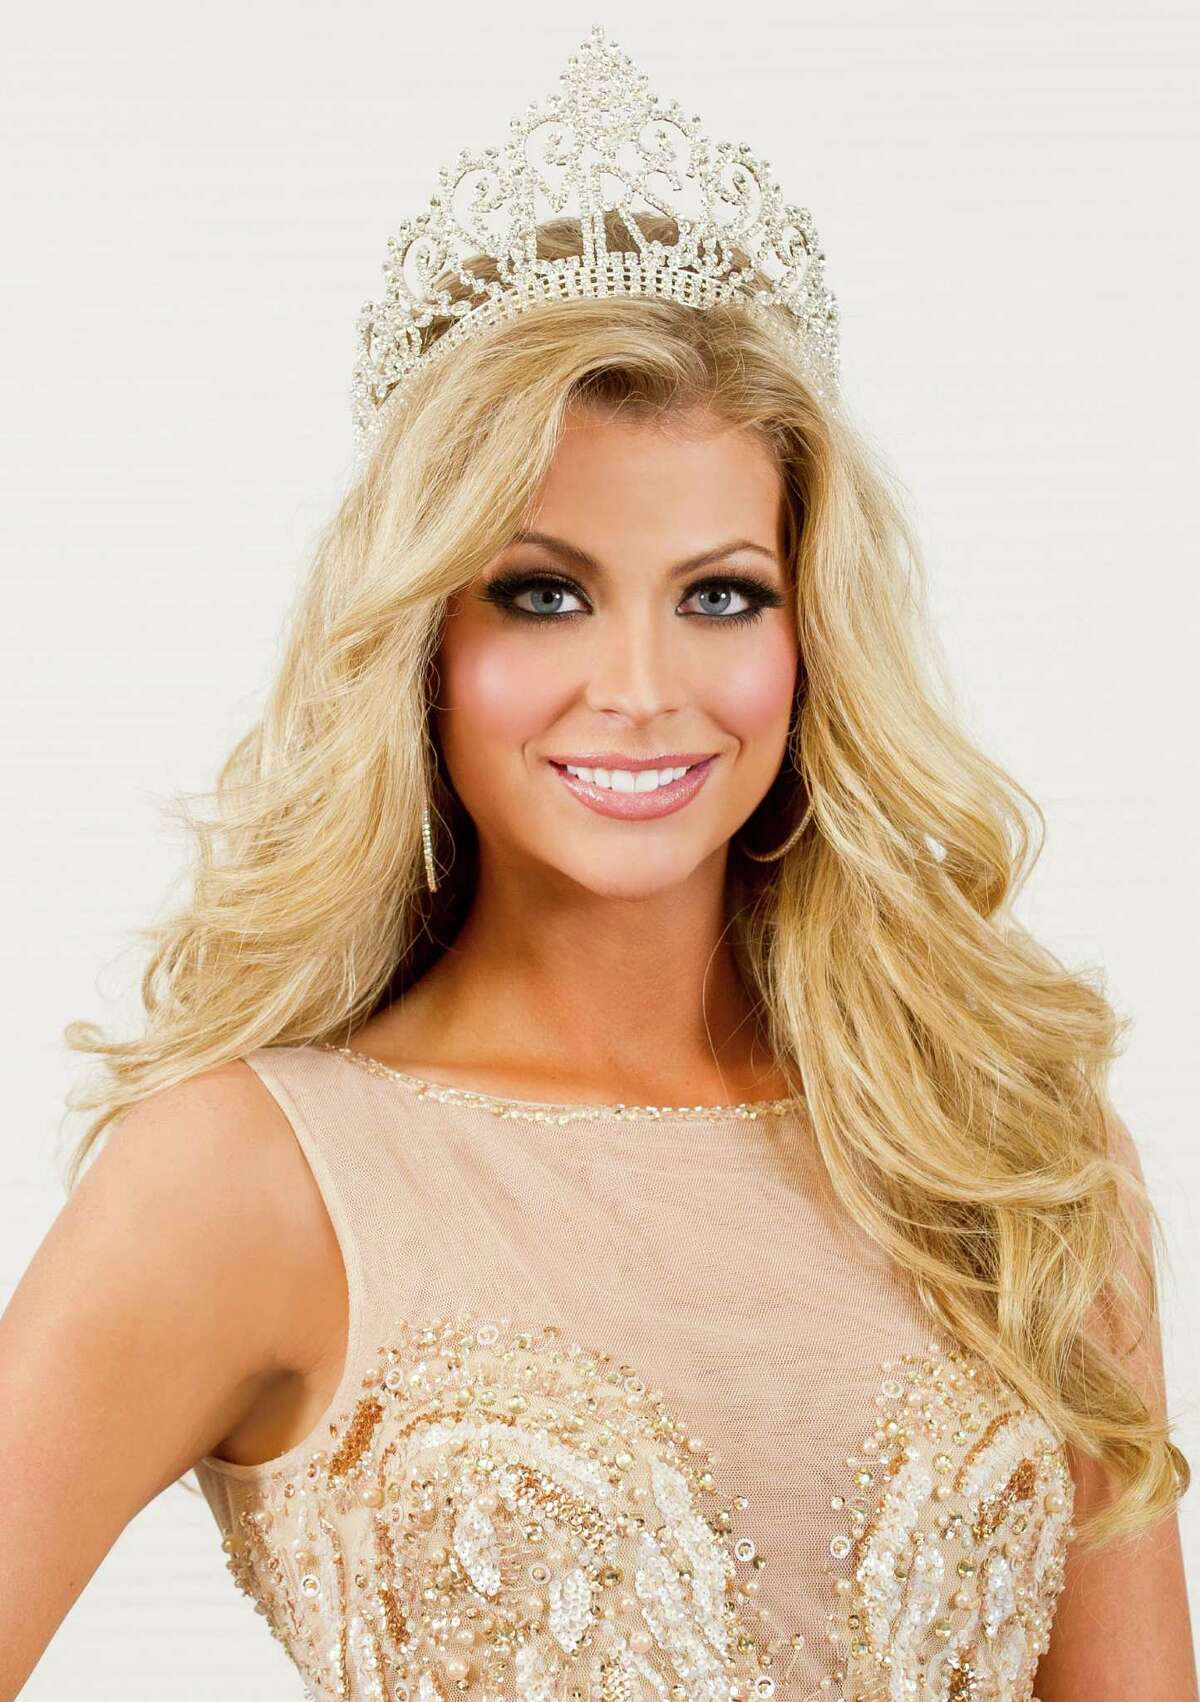 2014 Mrs. Texas United States Beth Isbell